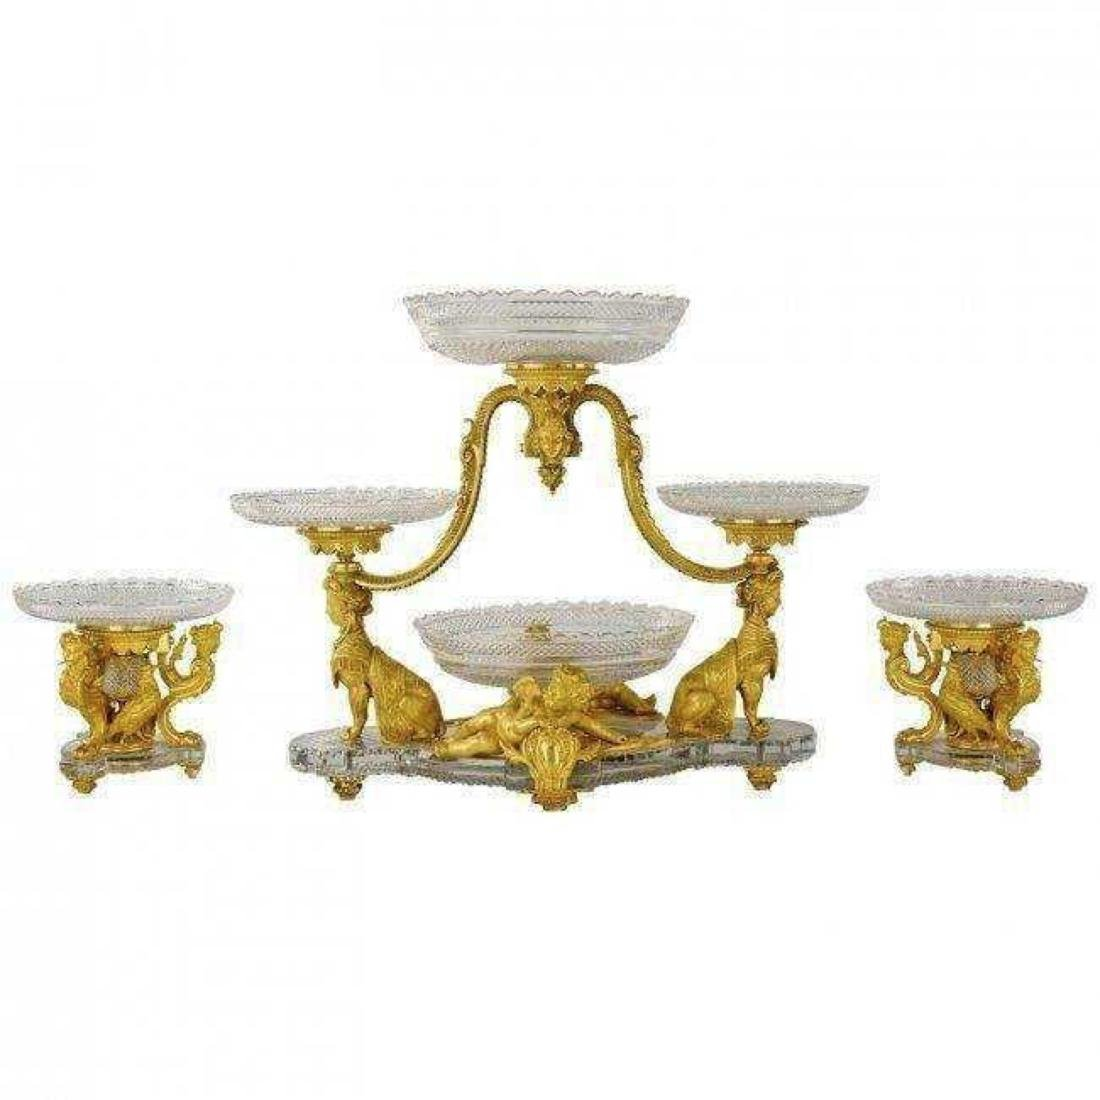 AN IMPOSING ORMOLU AND BACCARAT CRYSTAL GARNITURE